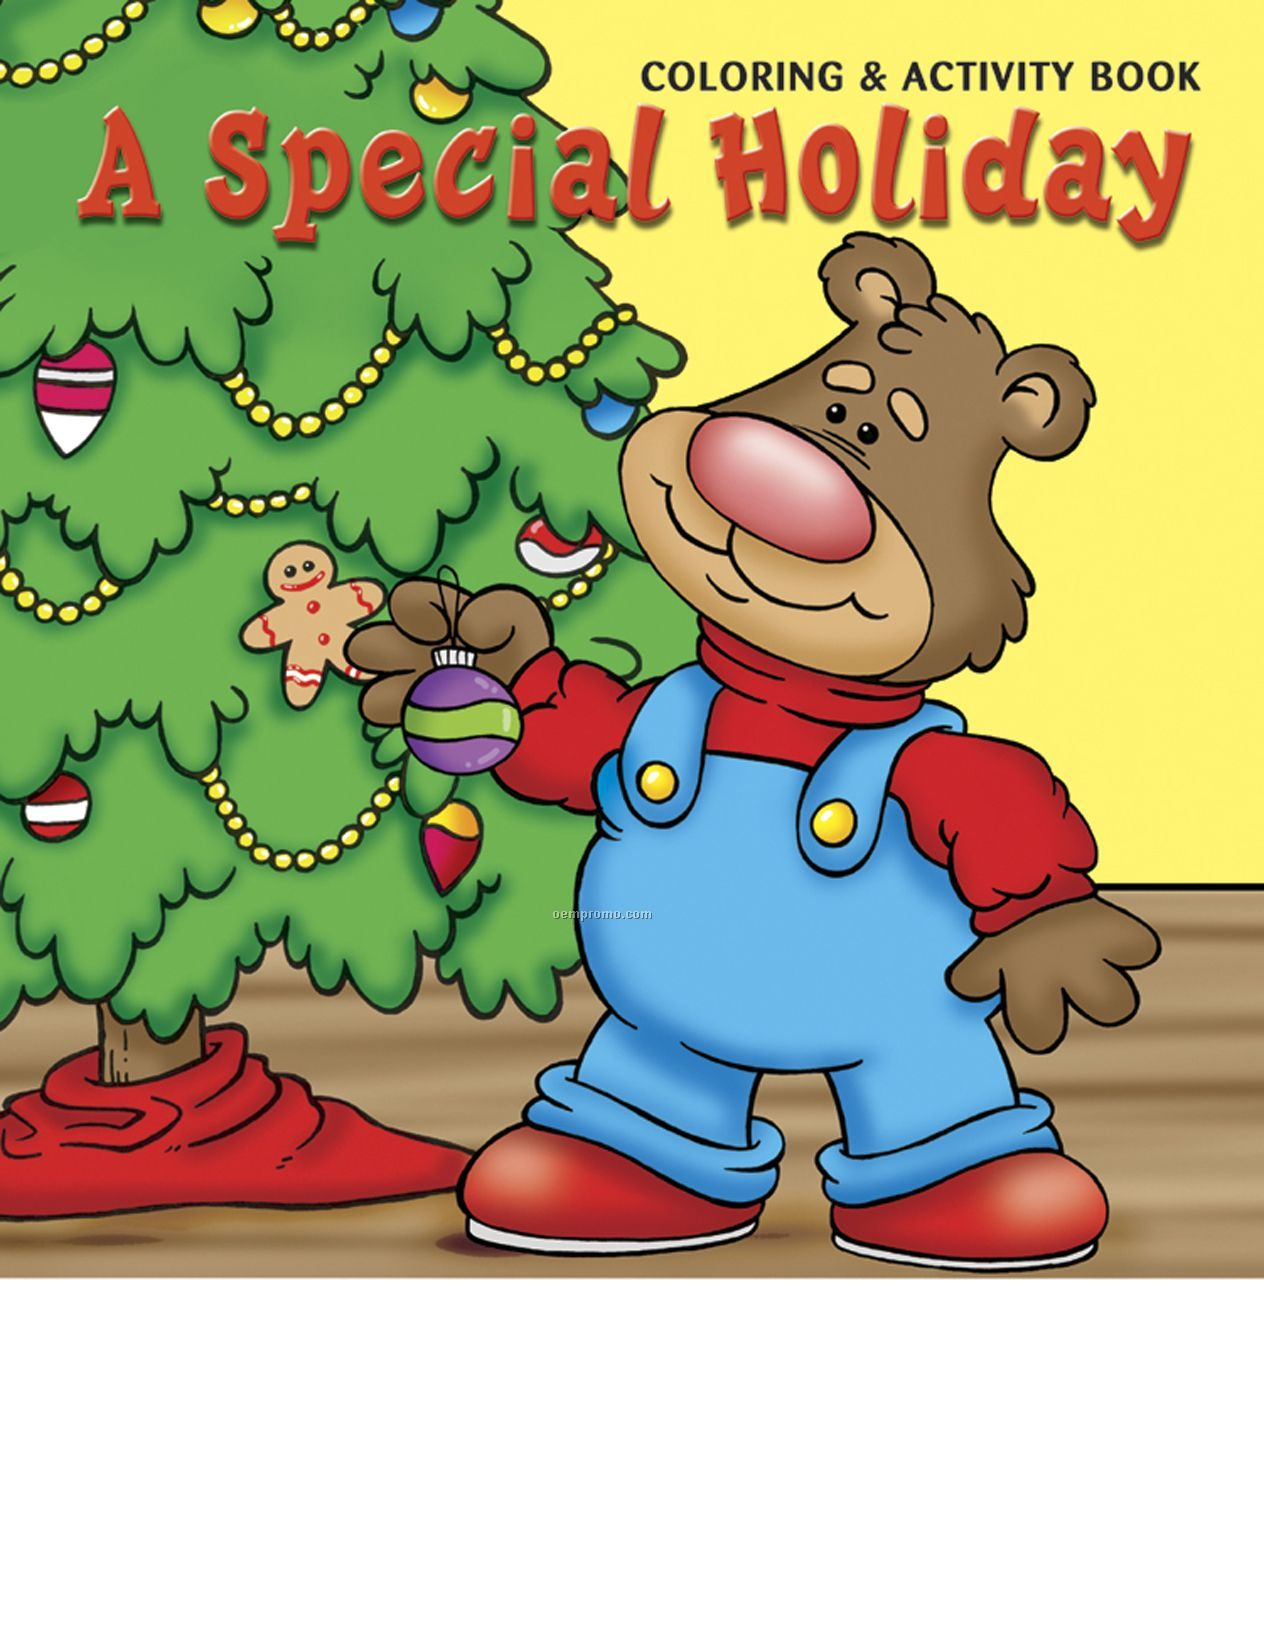 A Special Holiday Coloring Book